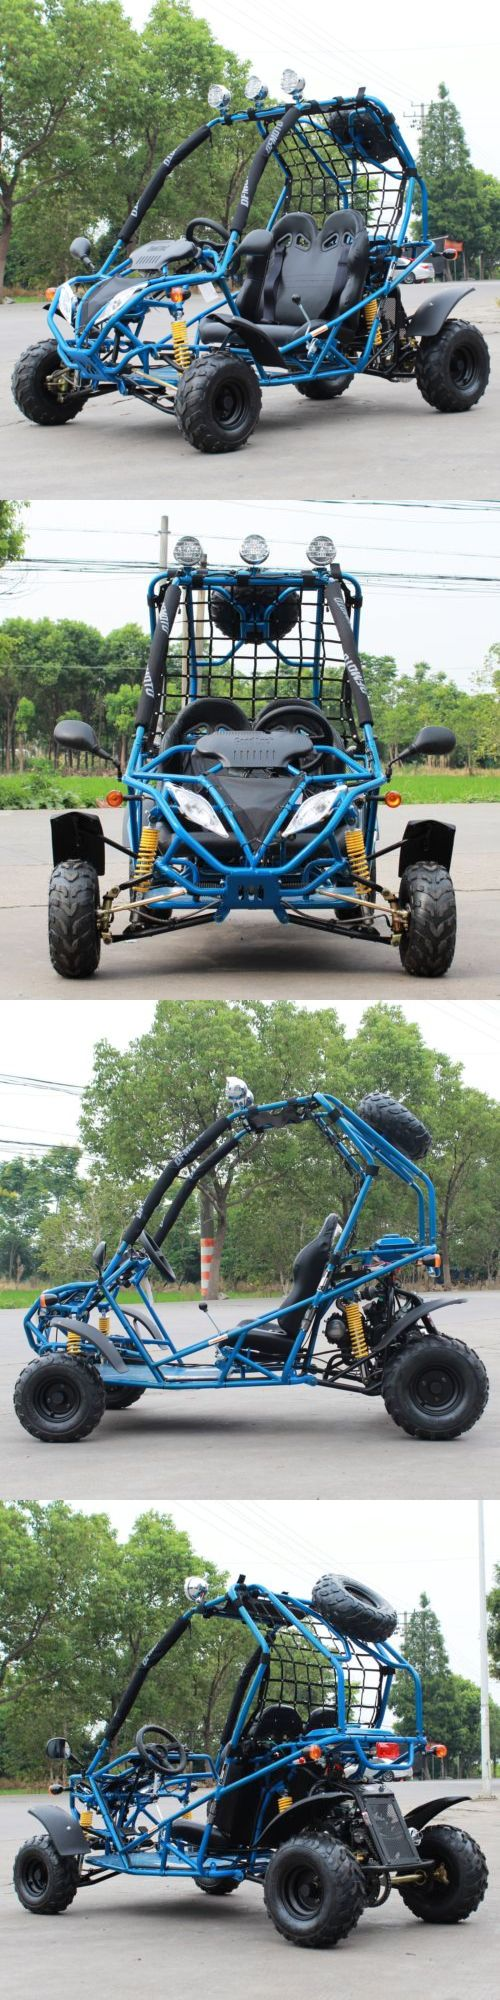 Complete Go-Karts and Frames 64656: New Df-Moto 125Cc Go Kart Blue 125Gka Steel Wheels With Free Spare Wheel -> BUY IT NOW ONLY: $1559.99 on eBay!